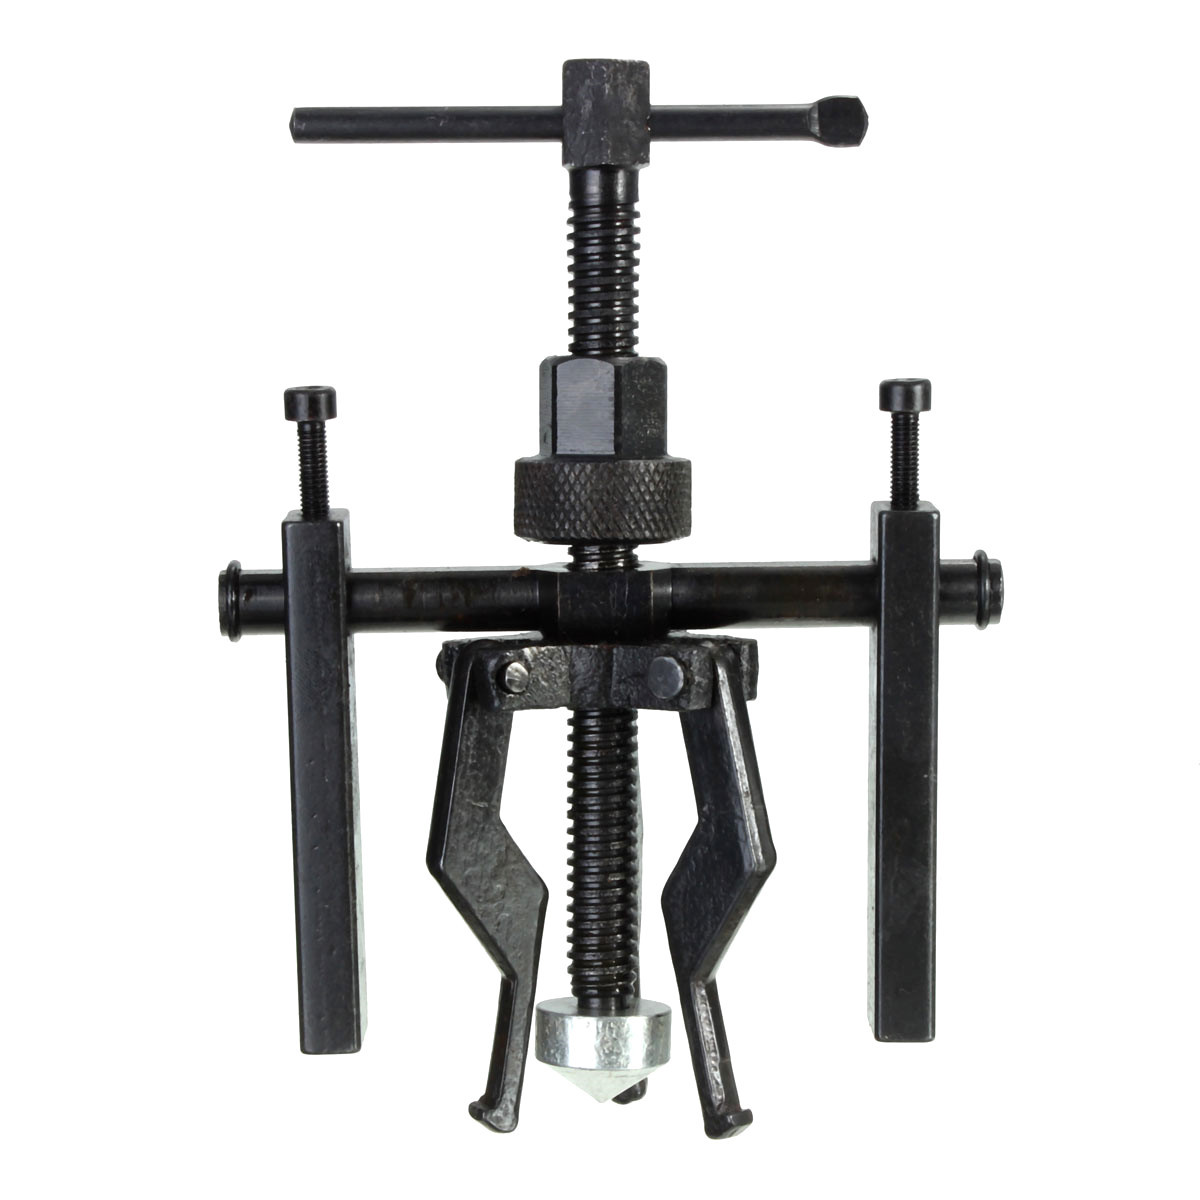 1pcs carbon steel Black 3-Jaw Inner Bearing Puller Tool Pull-out Rammer Bearing Disassembly and Maintenance Tool